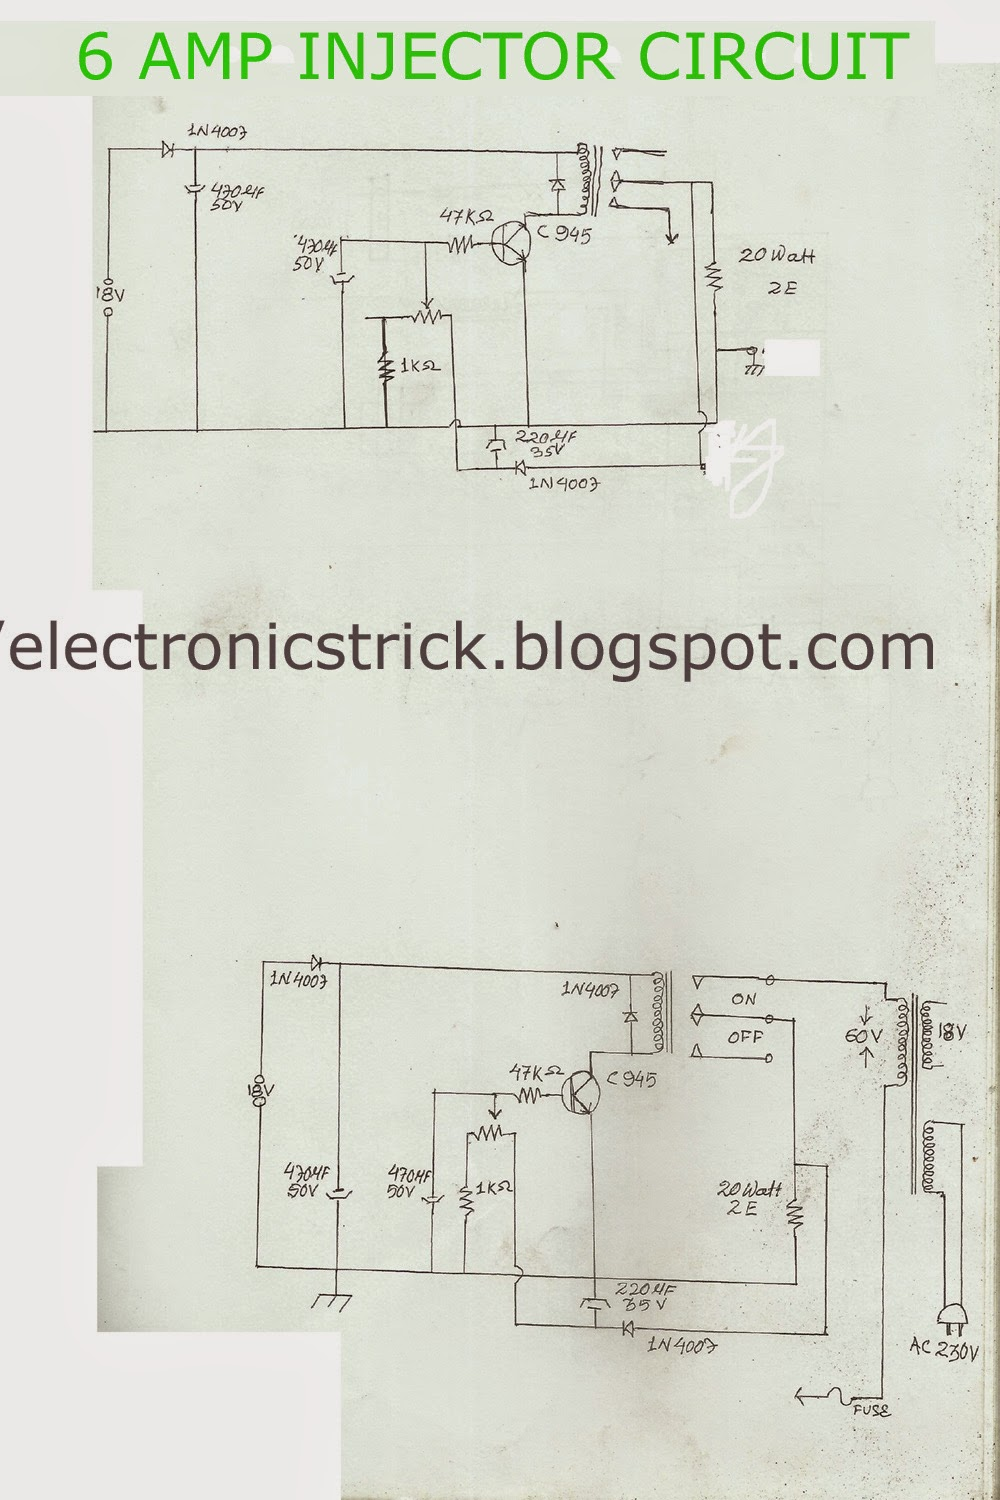 Electronics Tricks And Tips Cable Tv Injector 6 Amp Circuit Wiring Diagram For